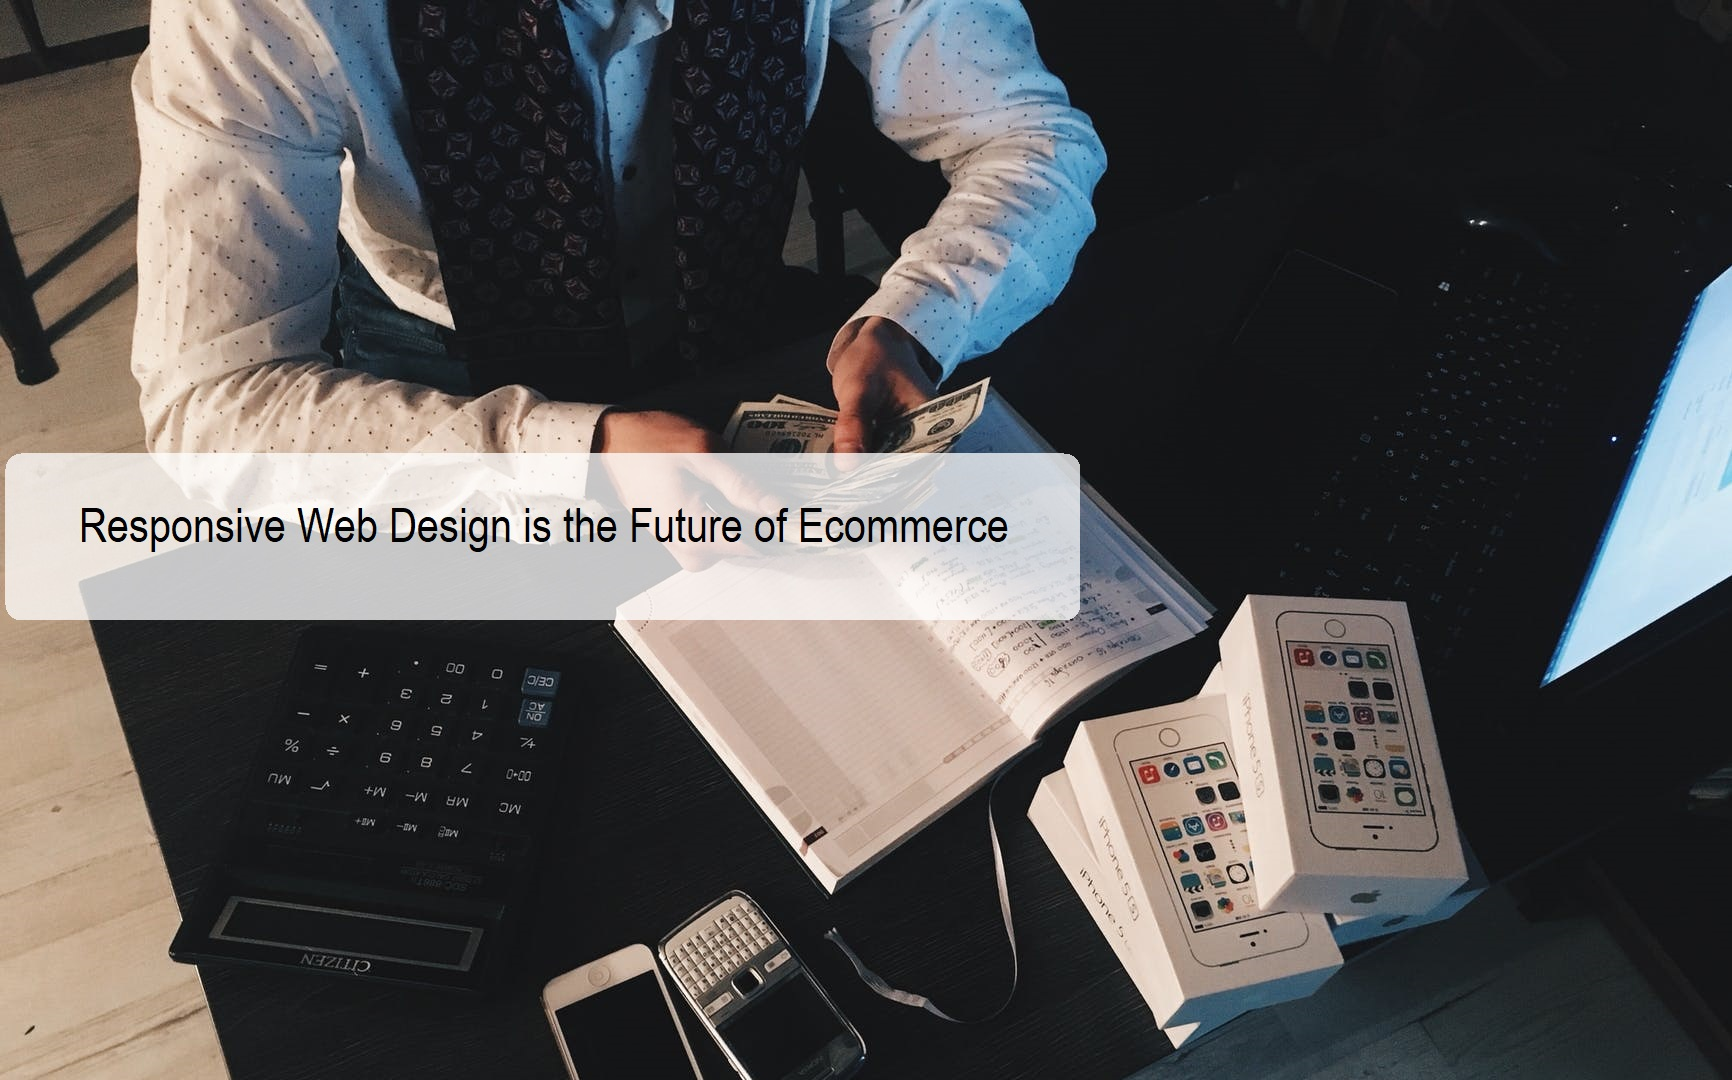 Responsive Web Design is the Future of Ecommerce